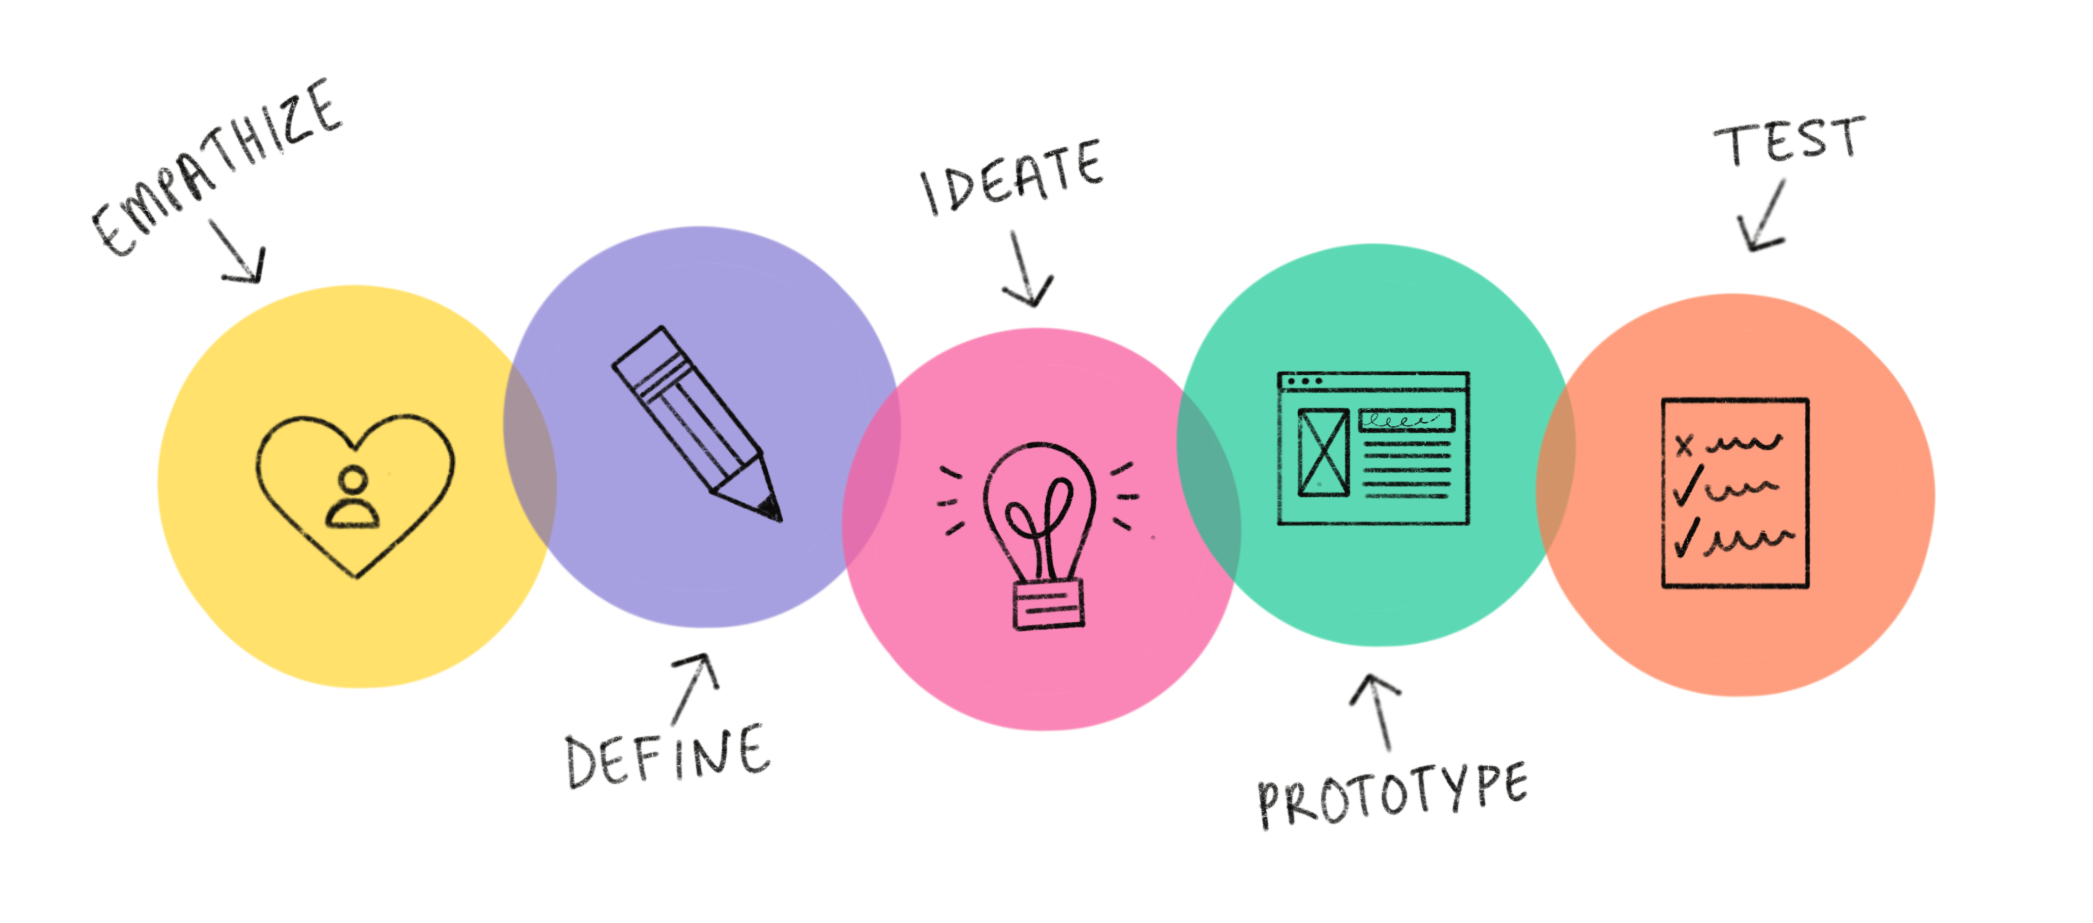 Design thinking process: empathise, define, ideate, prototype, test